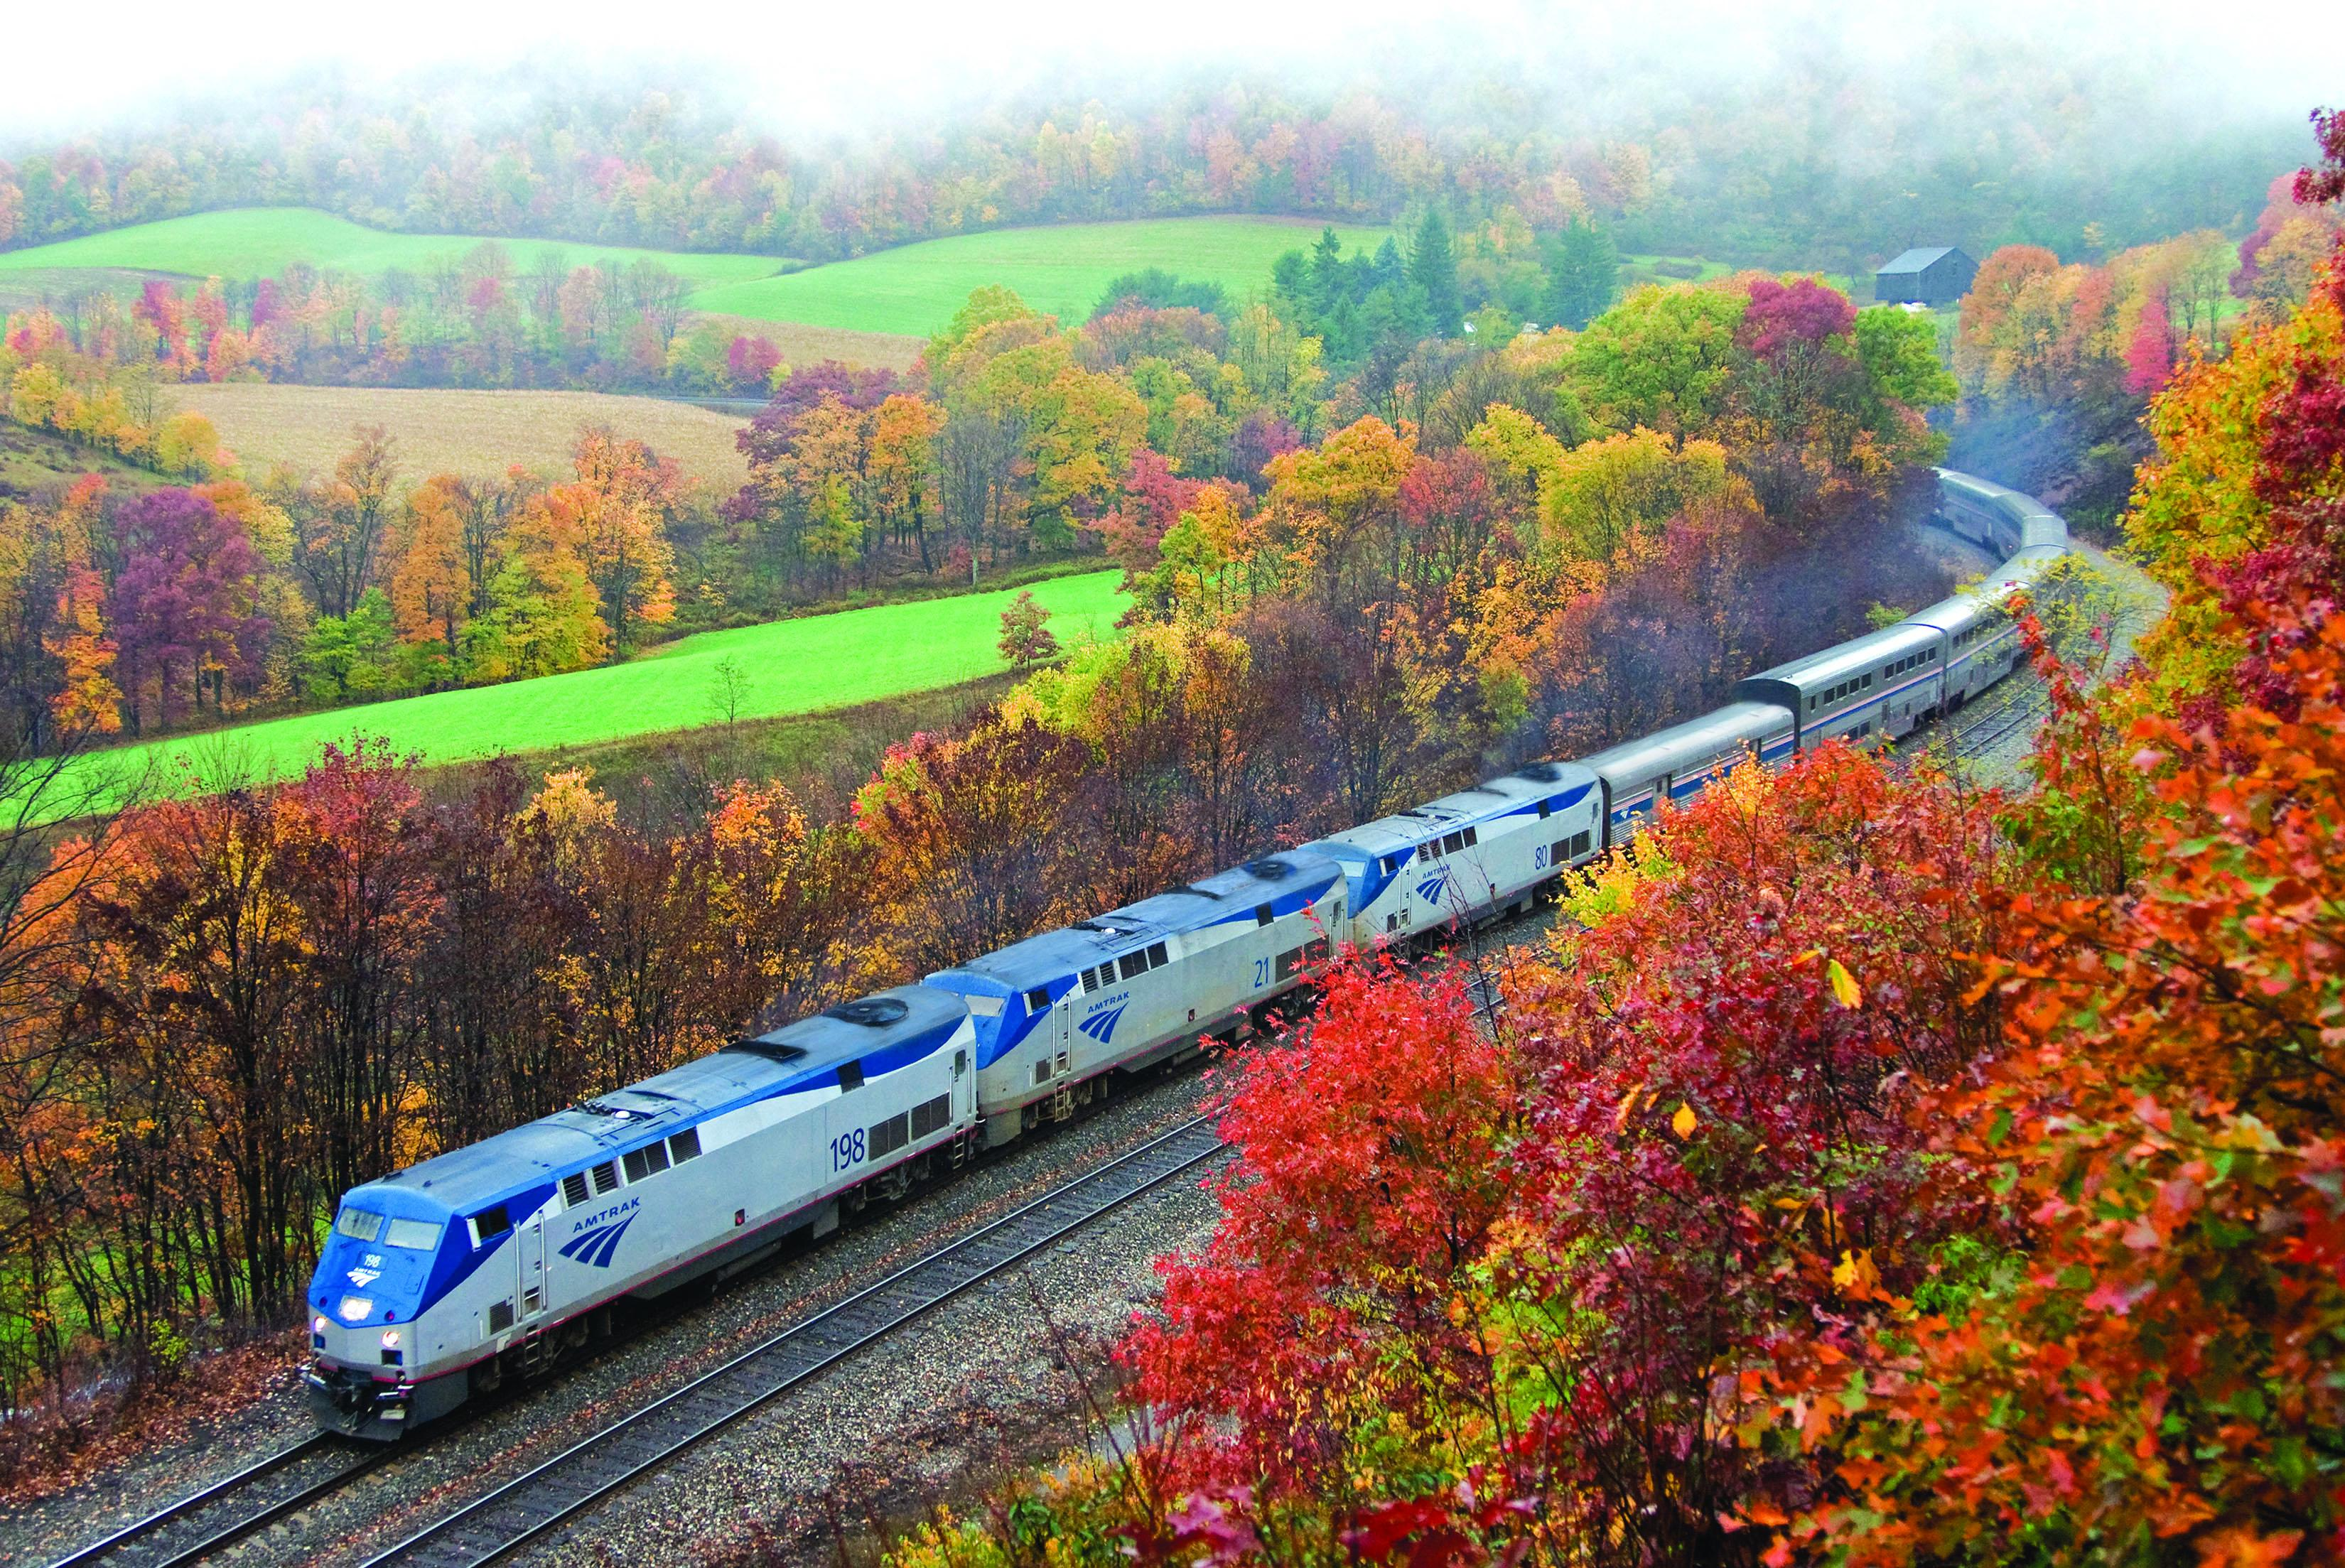 Amtrak makes for a scenic fall journey into portions of western Maryland and West Virginia.  (Image: Courtesy Amtrak)